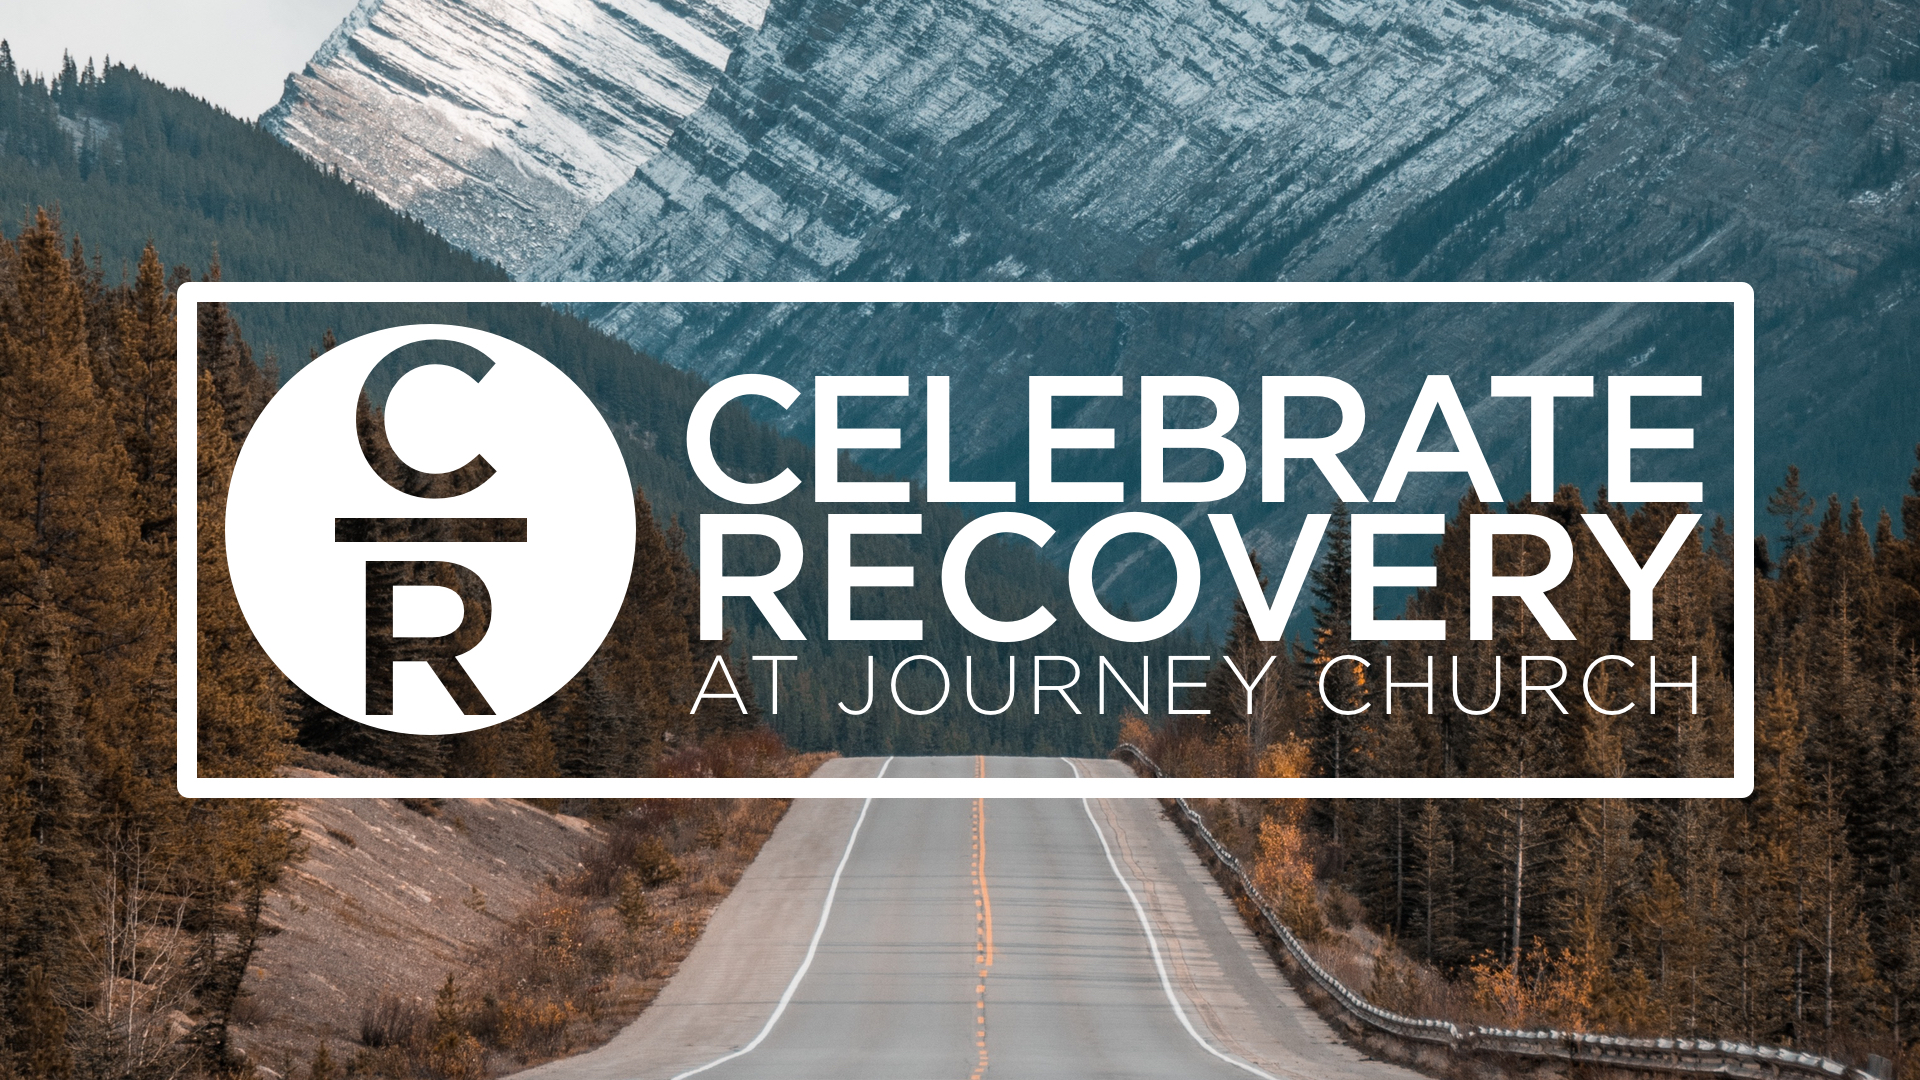 Journey Church offers Celebrate Recovery in Jackson TN